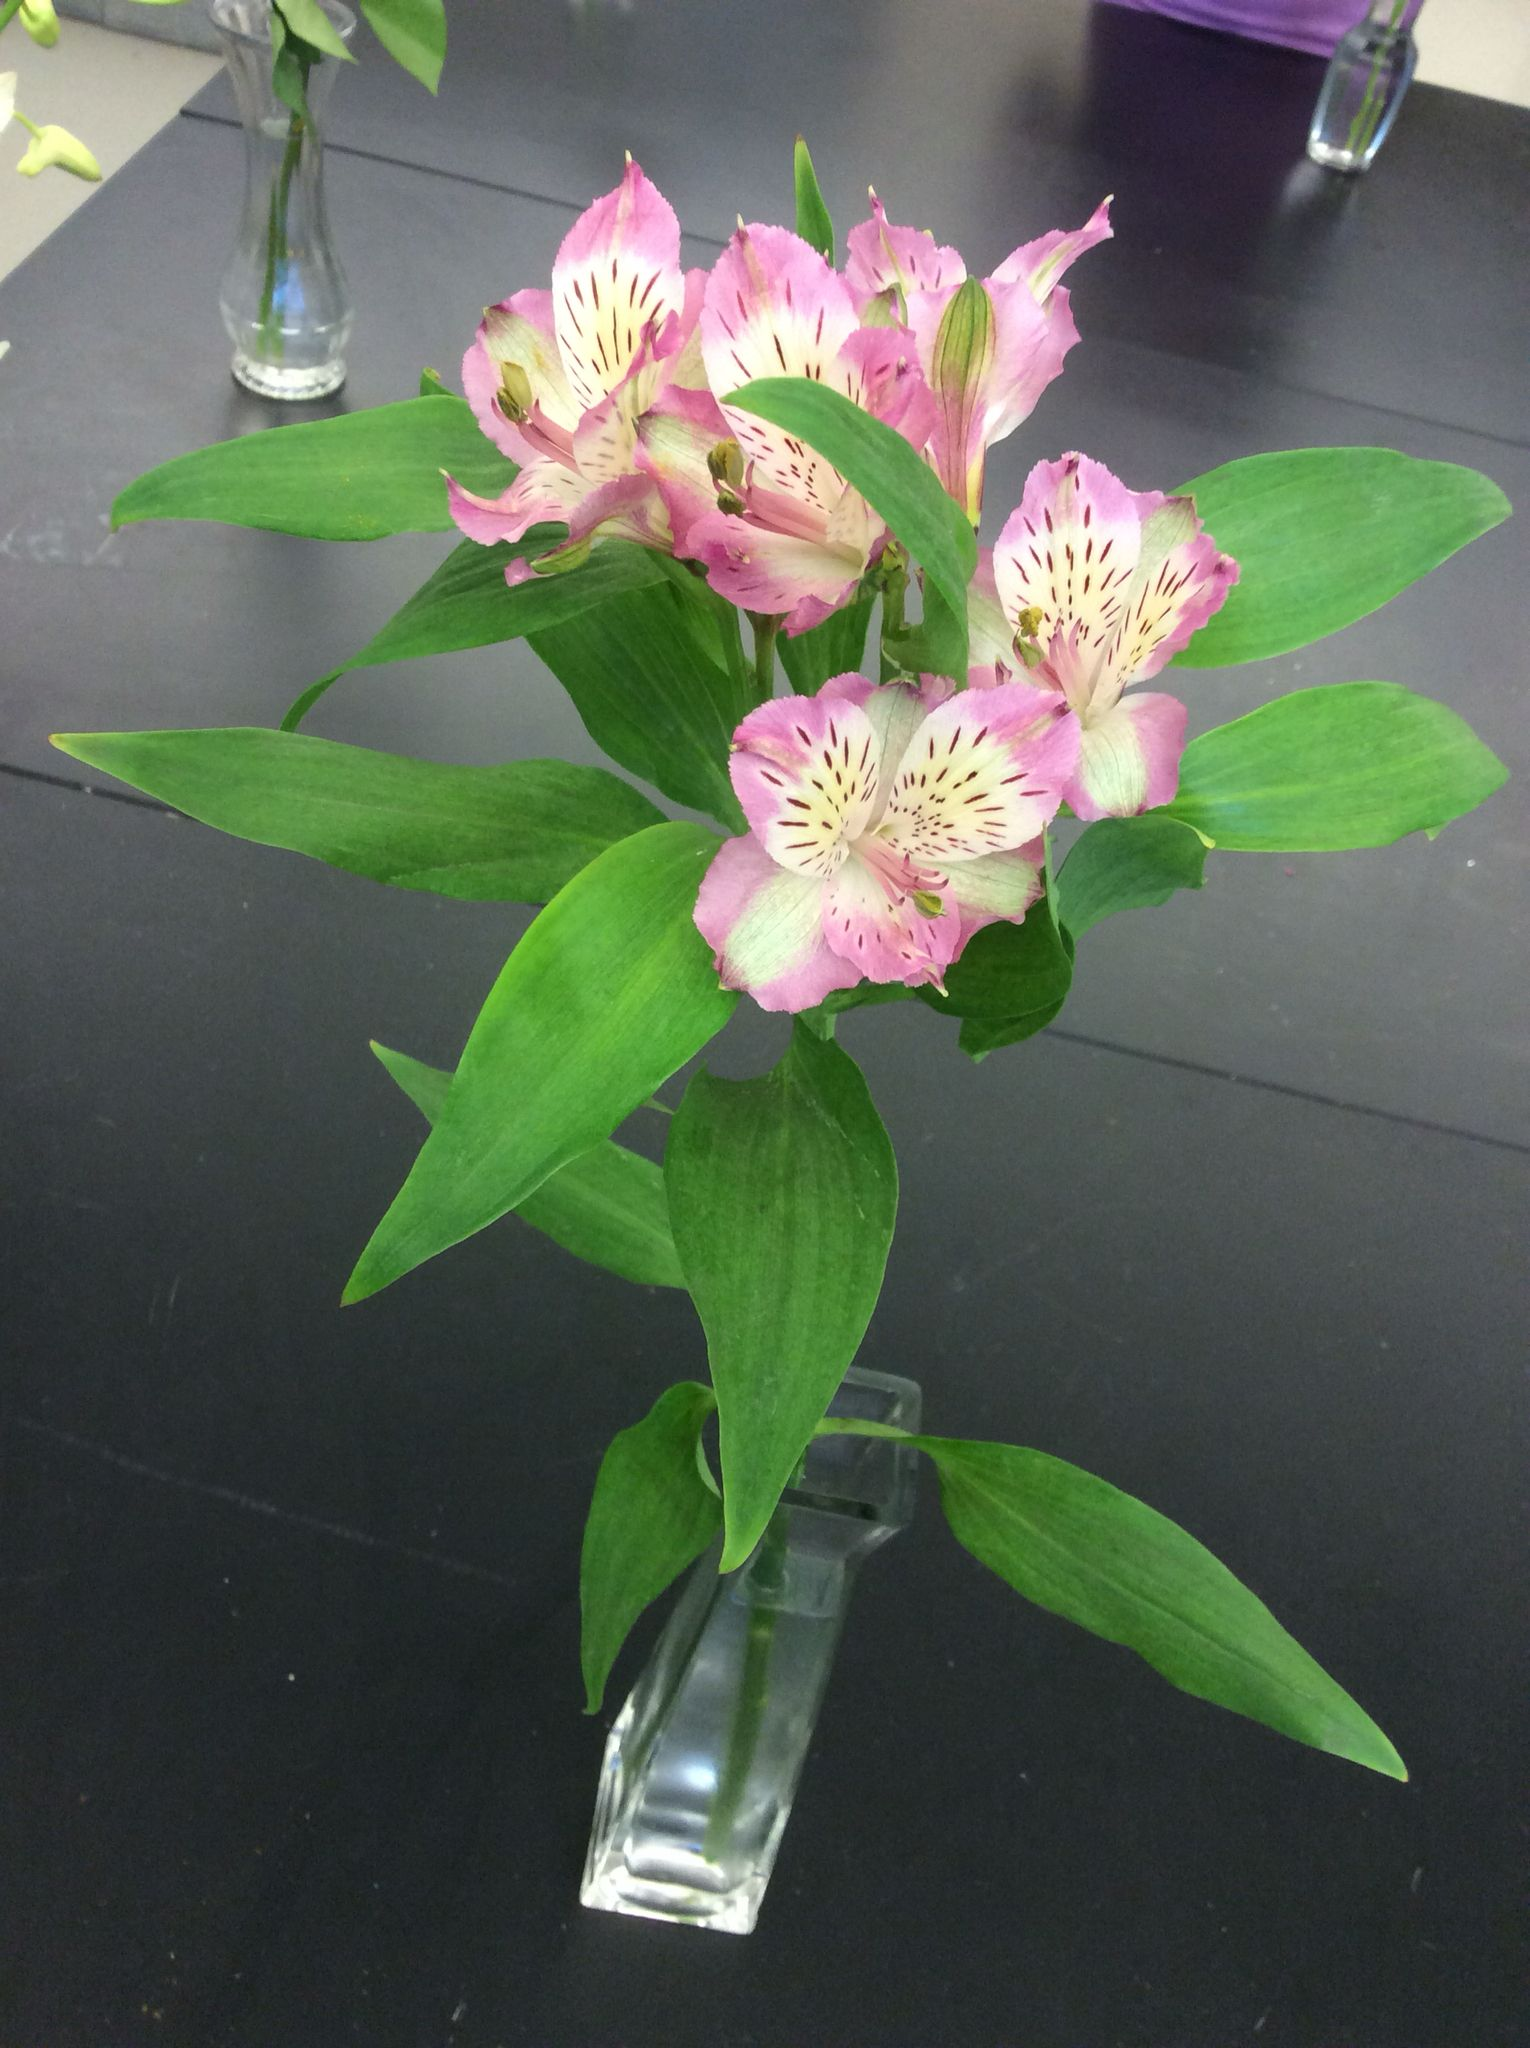 Common Name Alstroemeria Peruvian Lily Inca Lily Lily Of The Incas Scientific Name Alstroemeria Availability Year Round Peruvian Lilies Alstroemeria Umbel